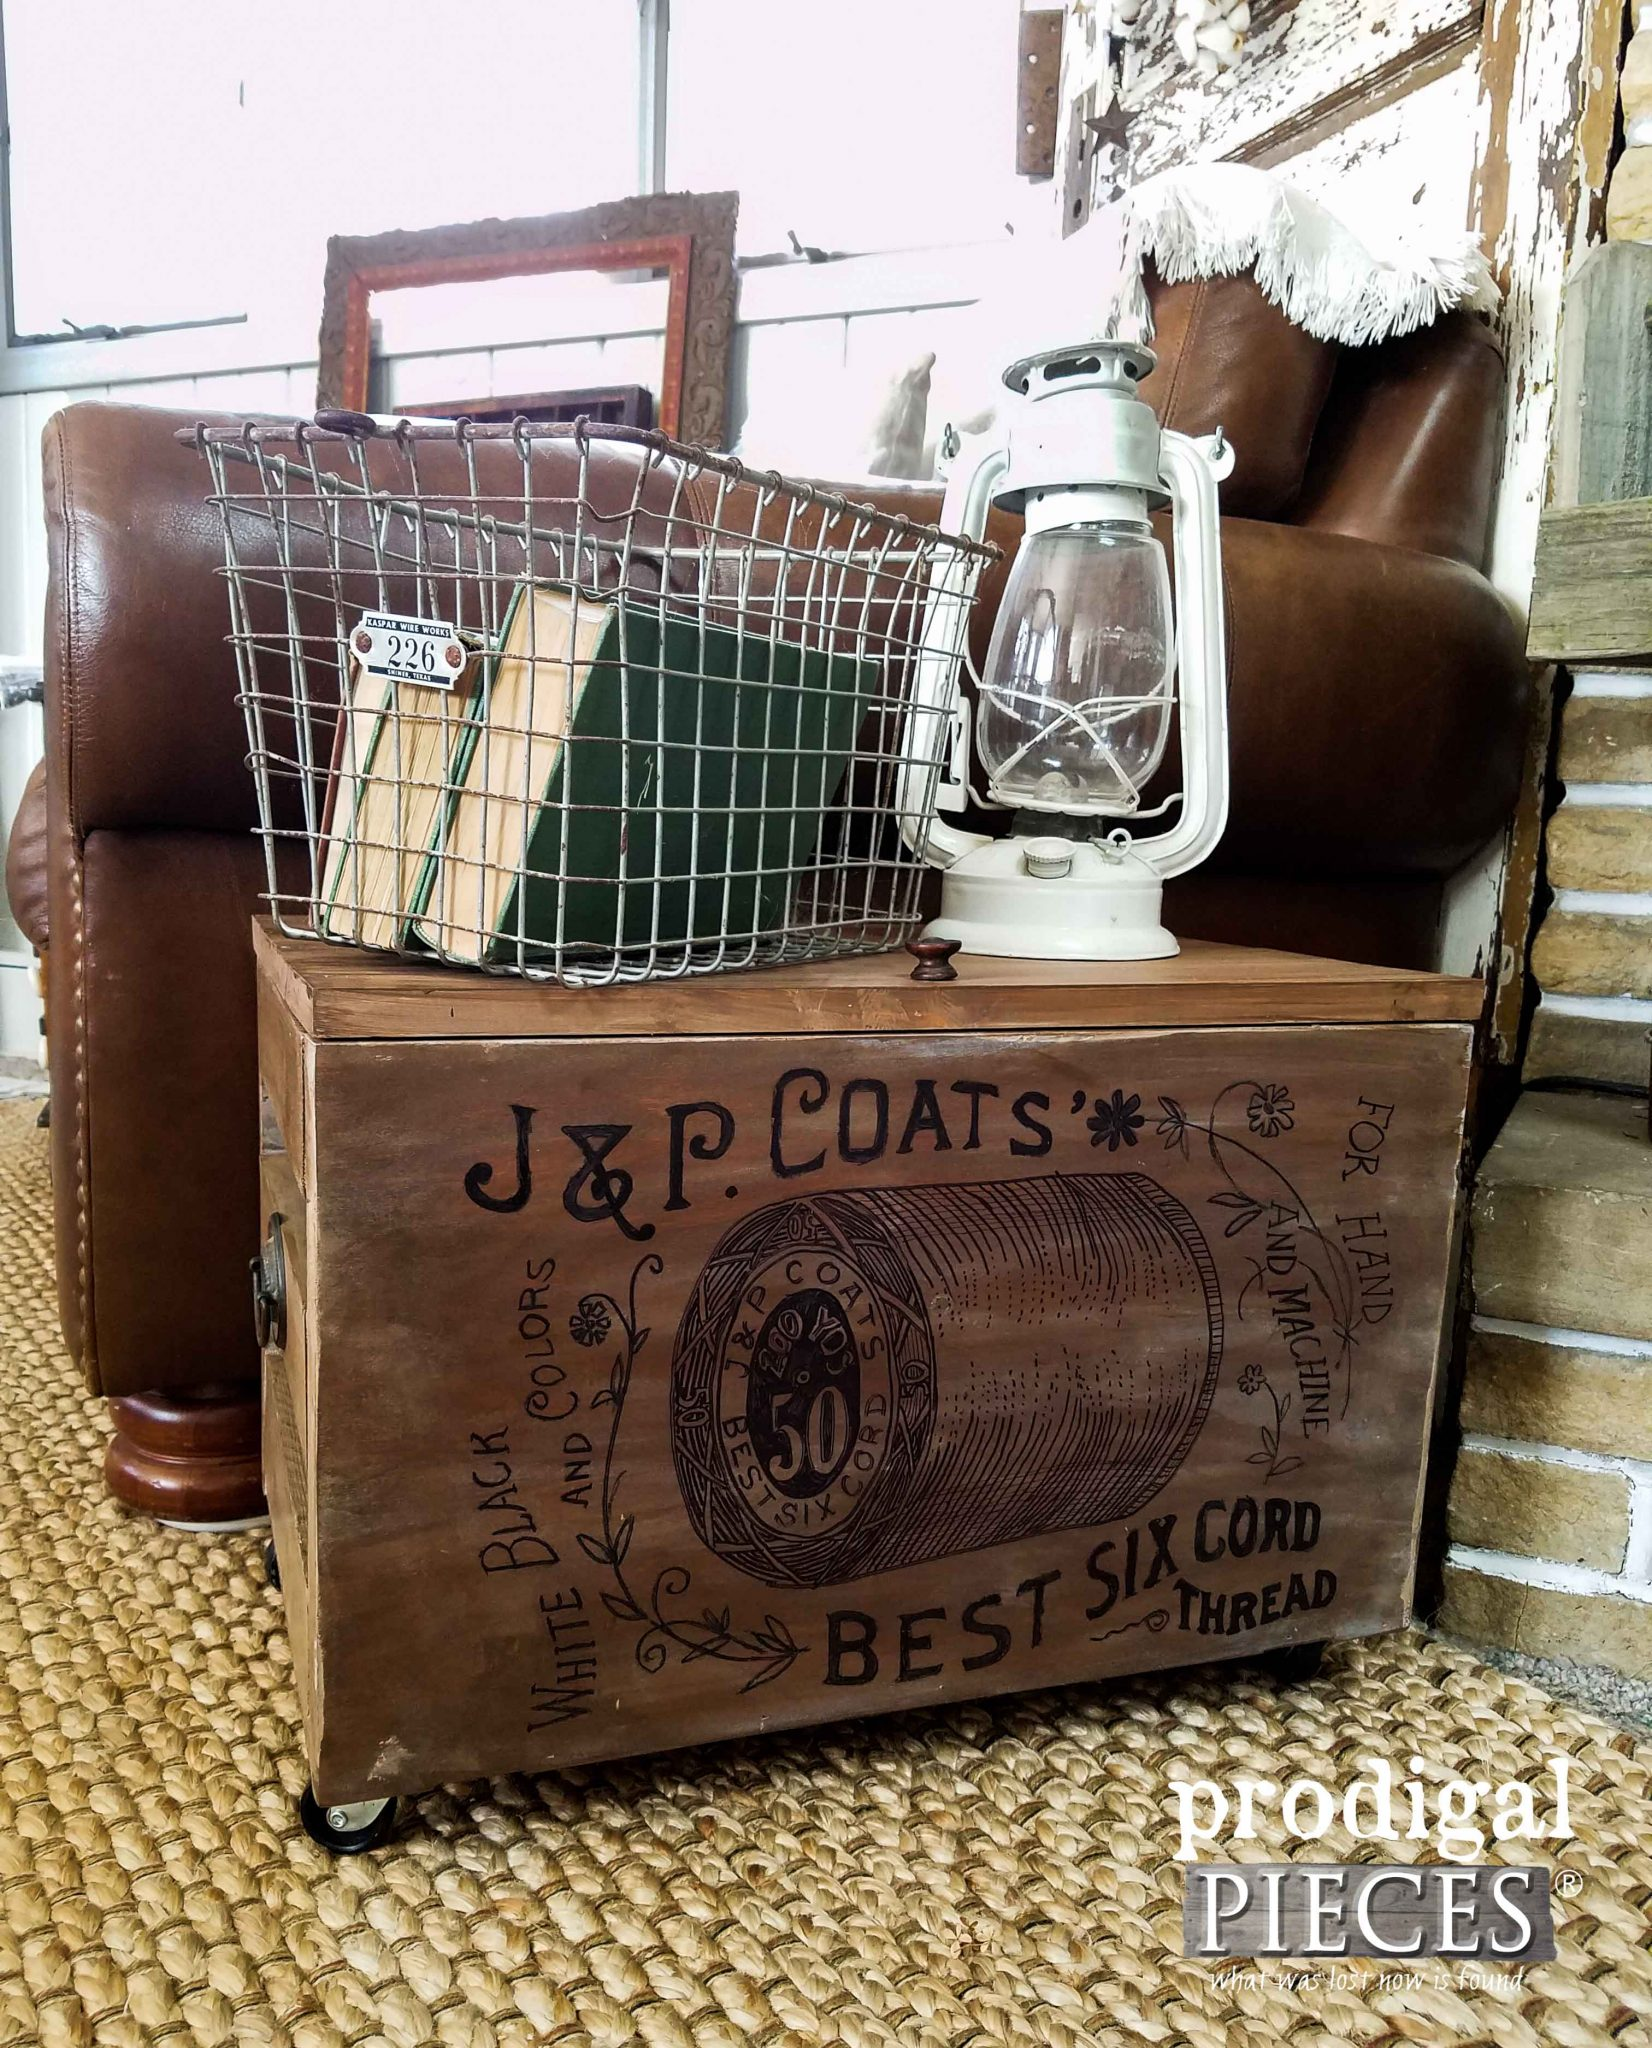 J & P Coats Thread Repurposed Crate DIY by Prodigal Pieces | prodigalpieces.com